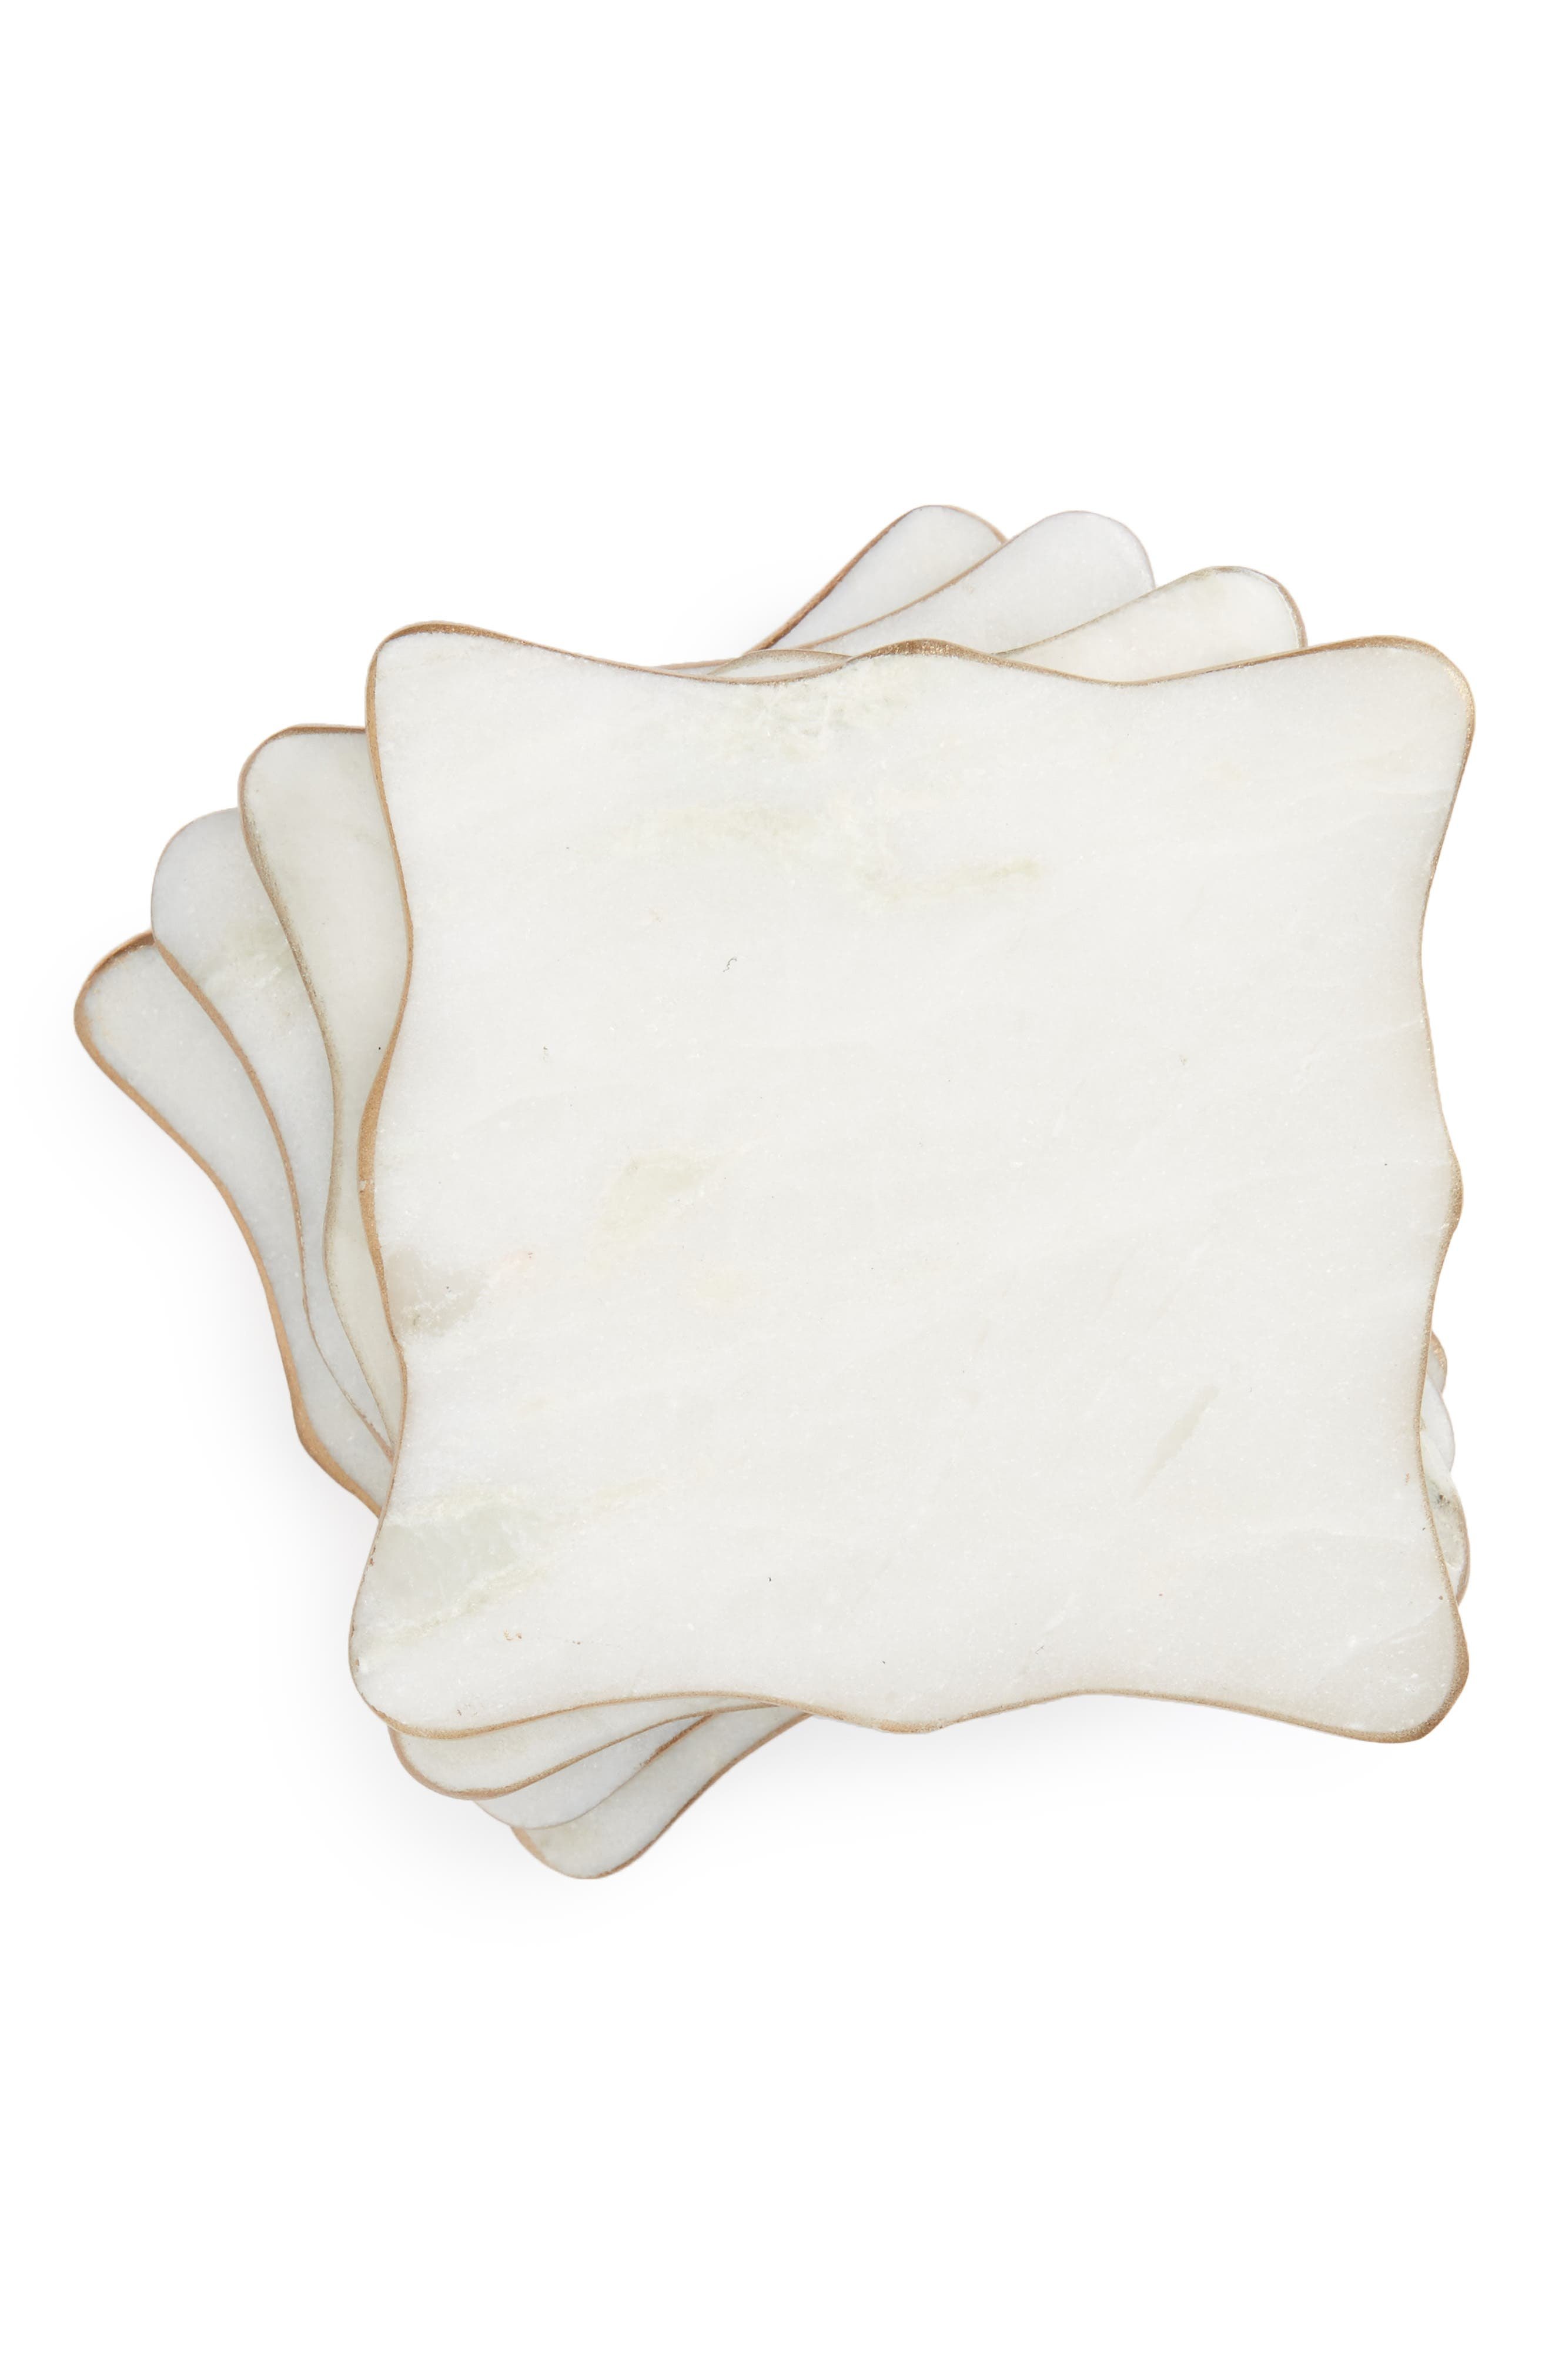 Alternate Image 1 Selected - Nordstrom at Home Set of 4 Marble Coasters